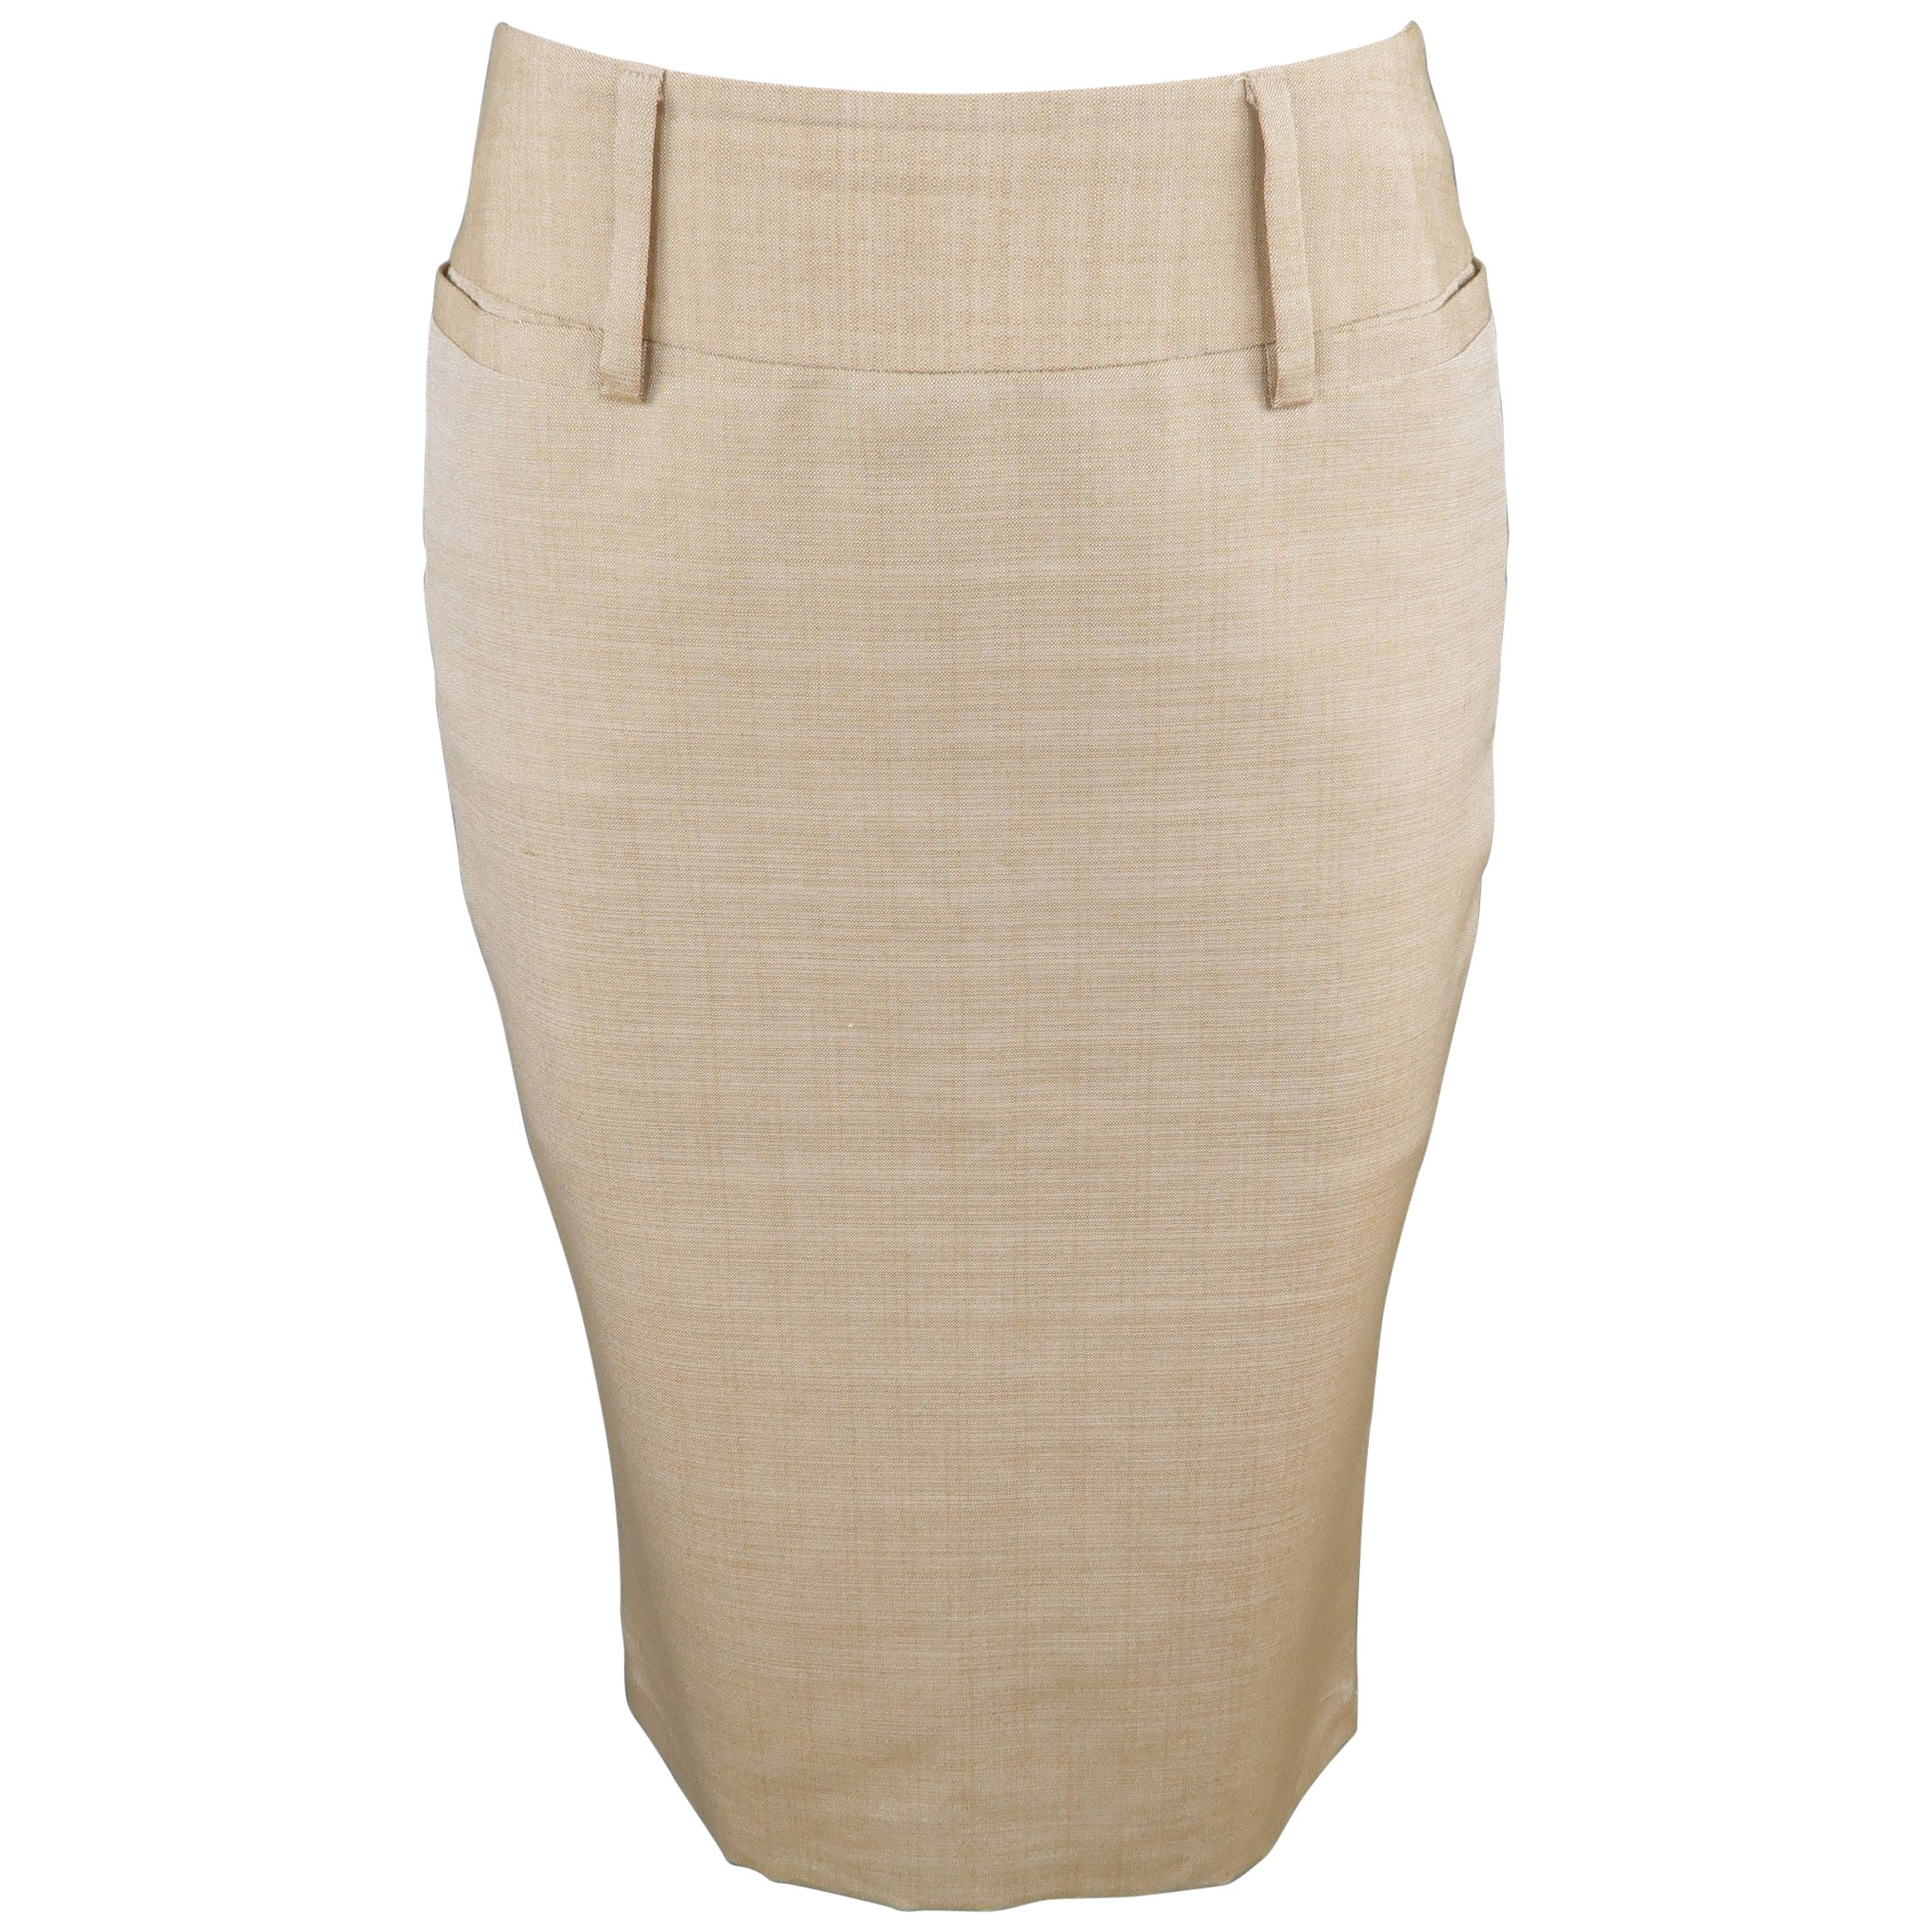 8d24d69606 DOLCE and GABBANA Size 2 Beige Silk Pencil Skirt For Sale at 1stdibs